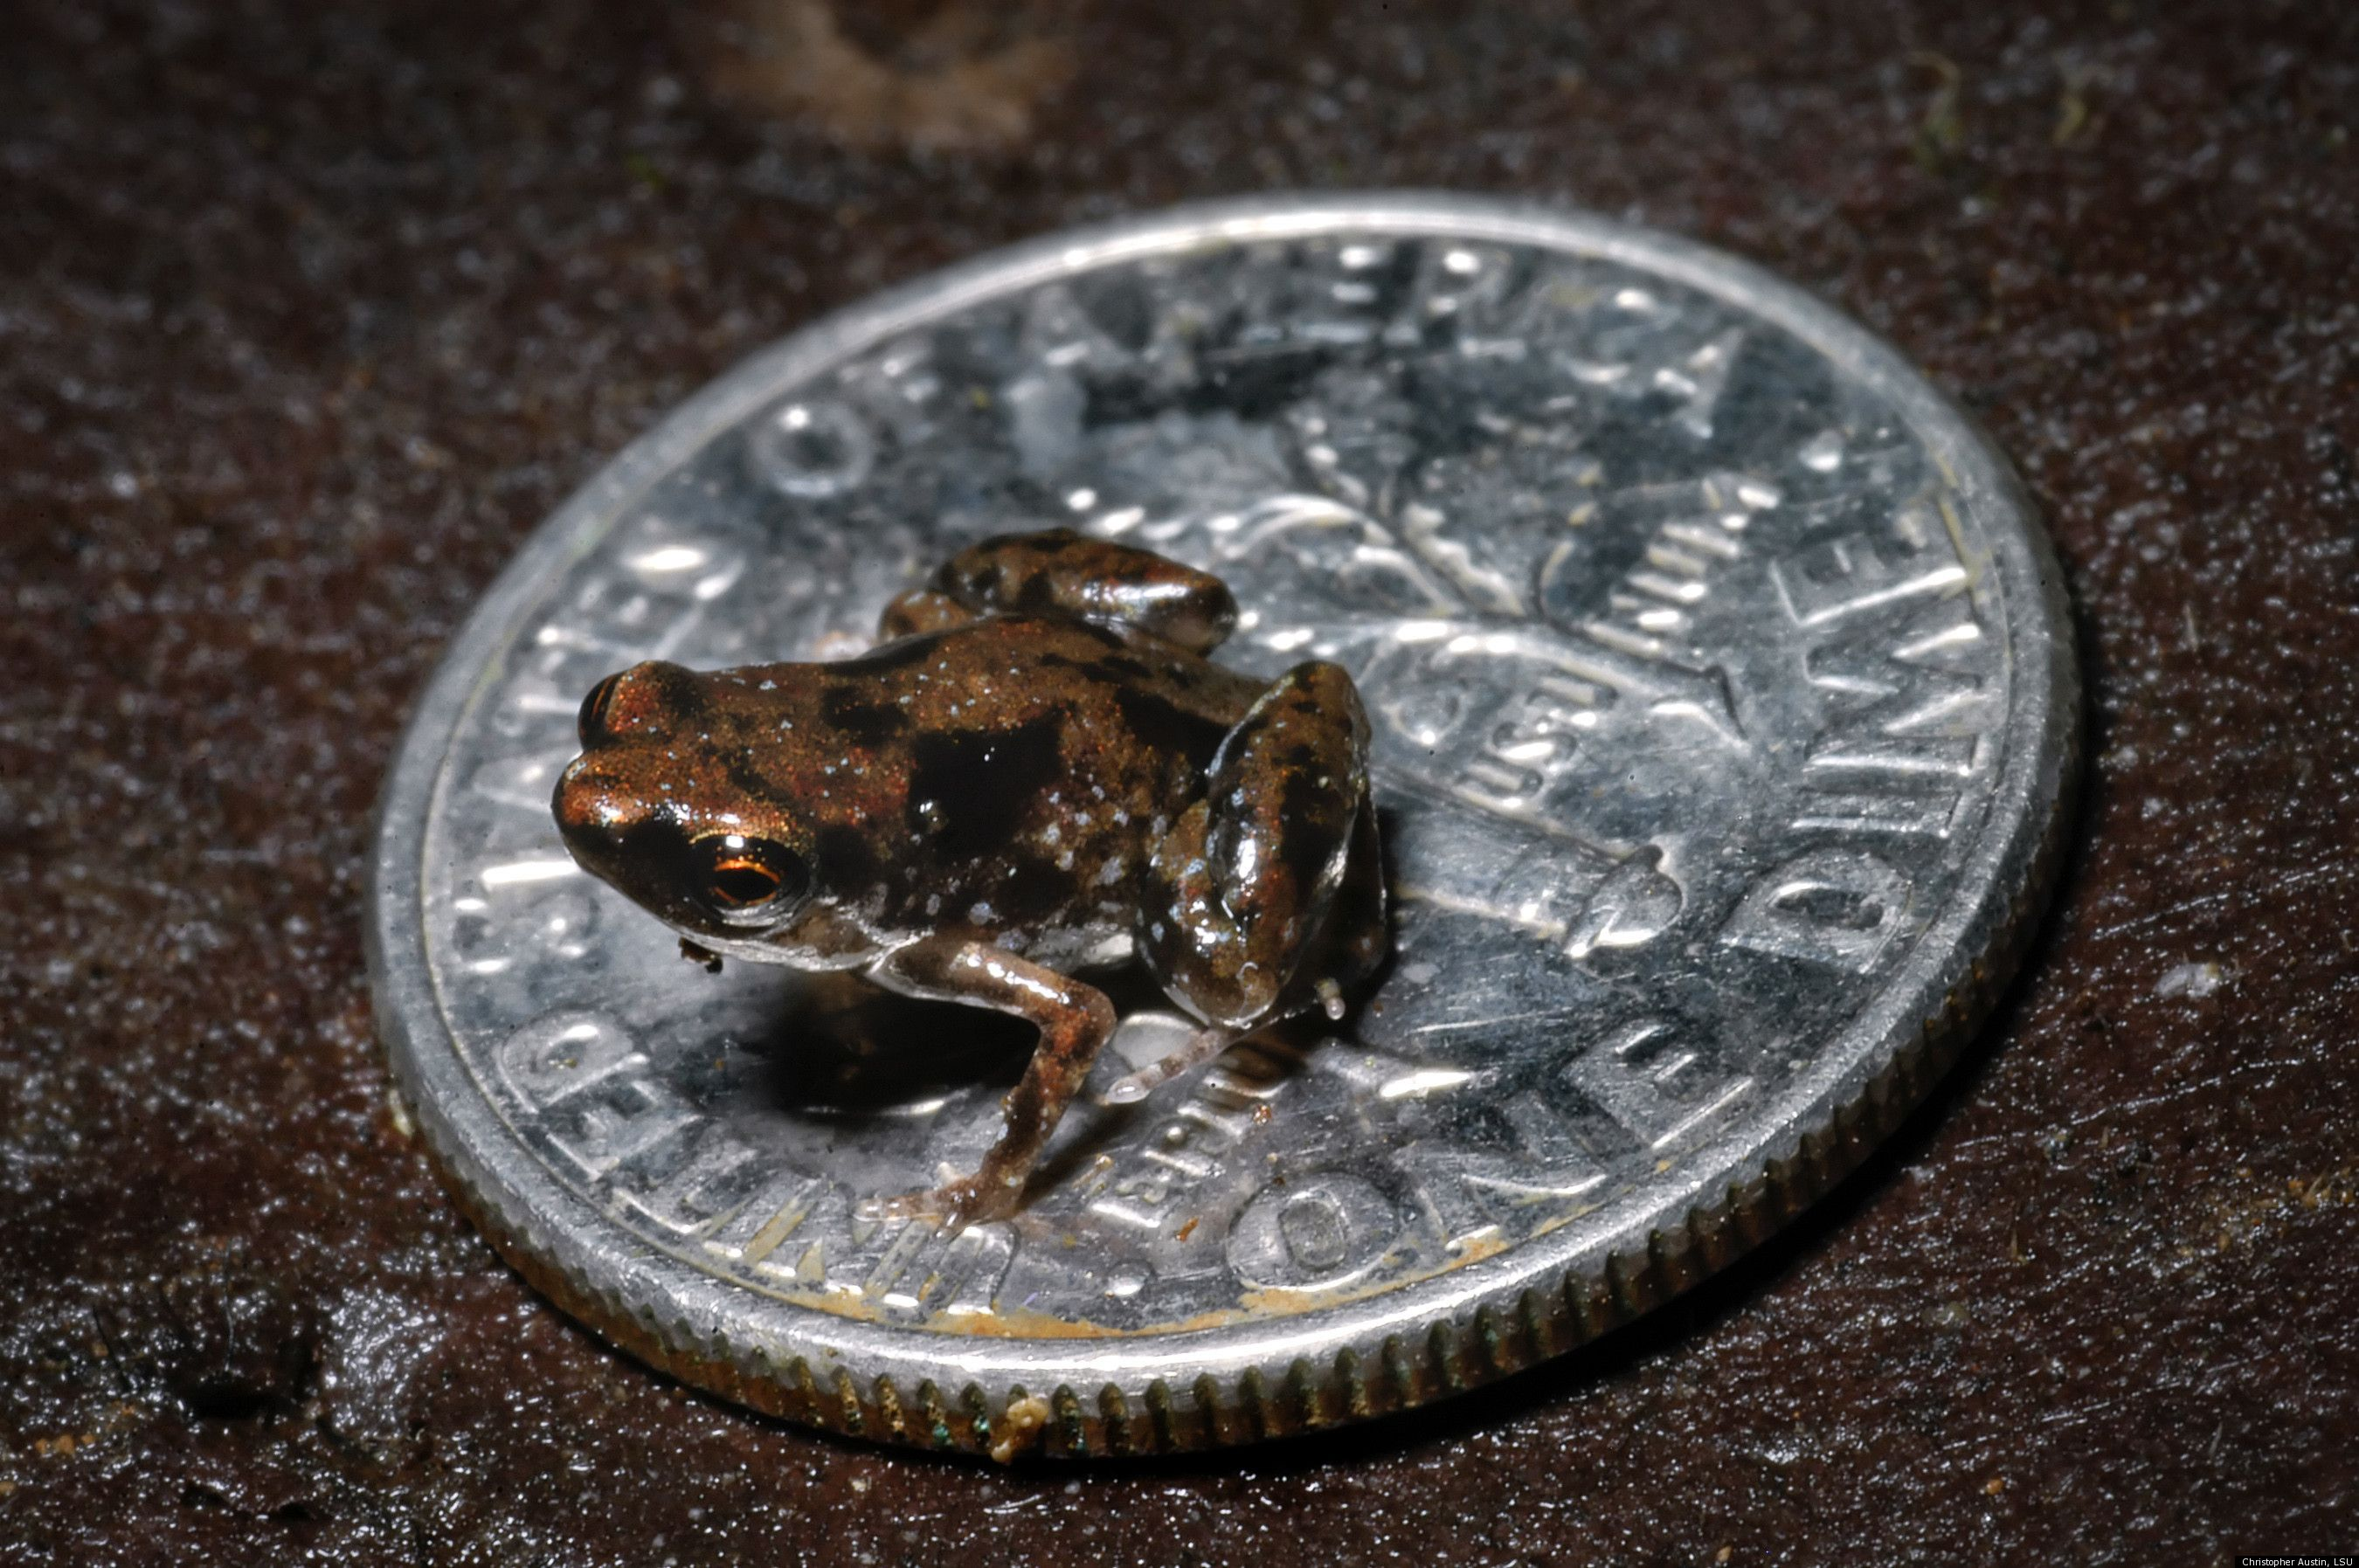 World's smallest vertebrate was discovered in New Guinea... as you can see, the frog is small enough that it fits on a US dime!